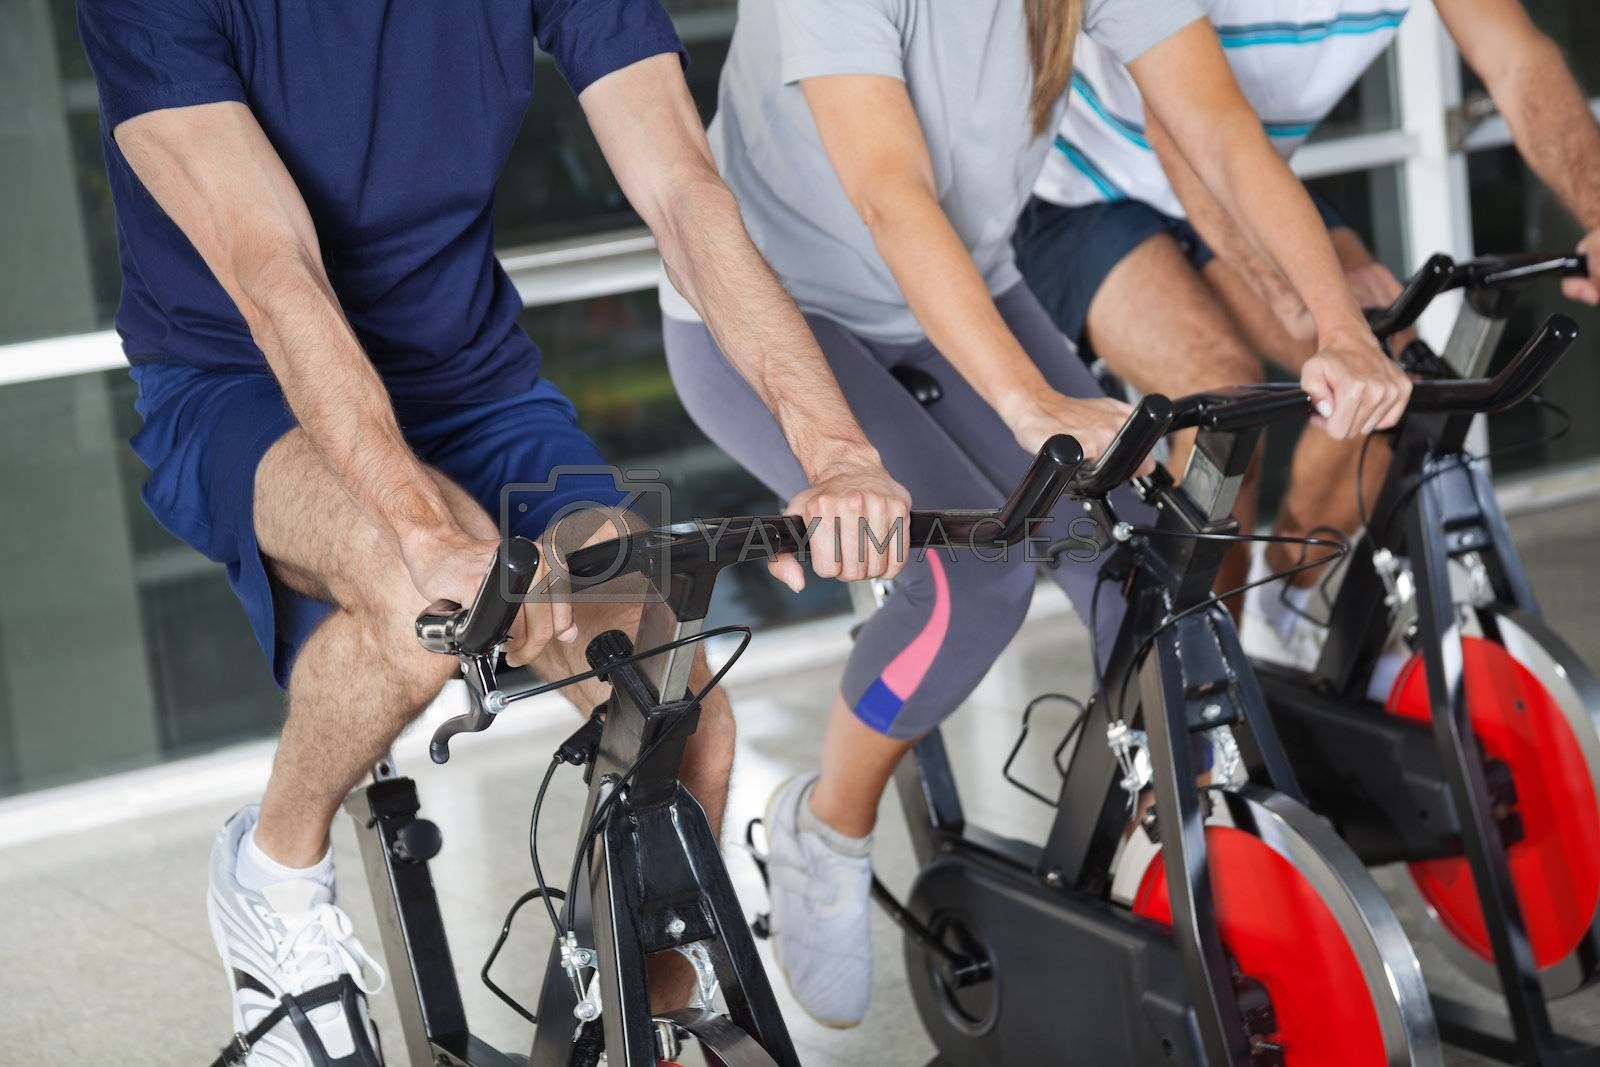 Low section of men and woman on exercise bikes in health club